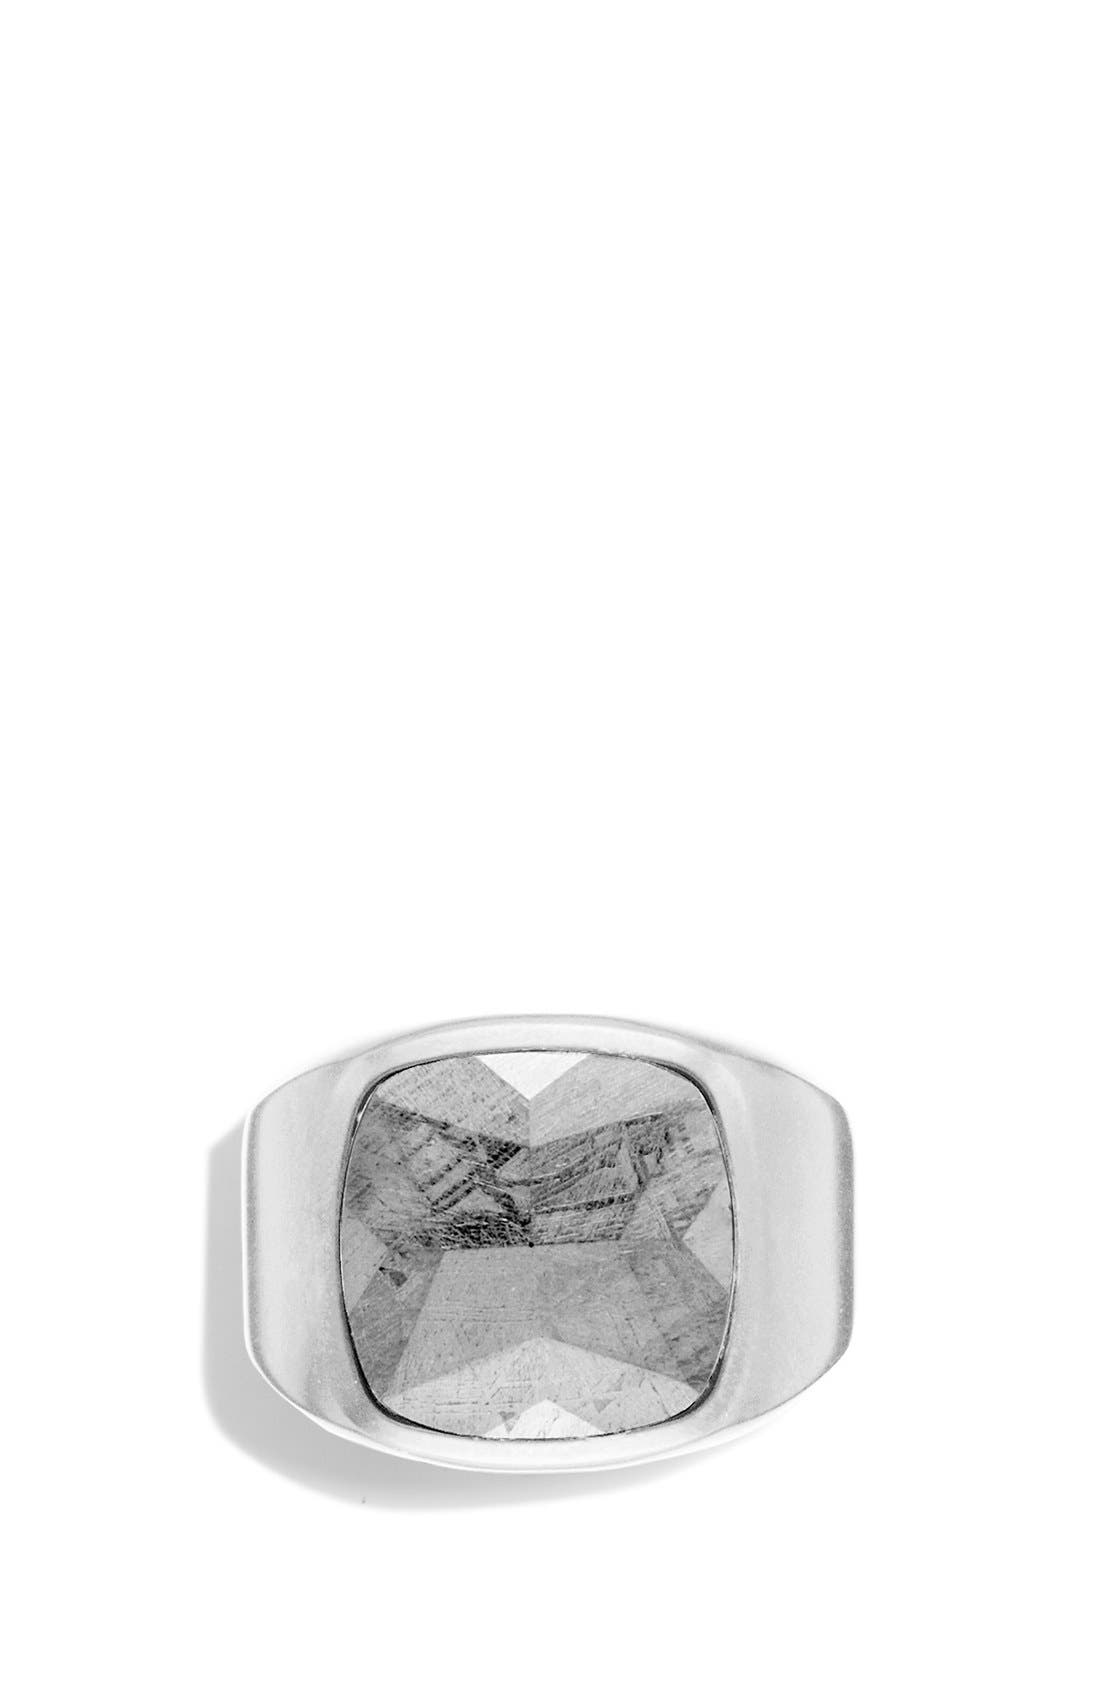 Signet Ring with Meteorite,                             Alternate thumbnail 4, color,                             030